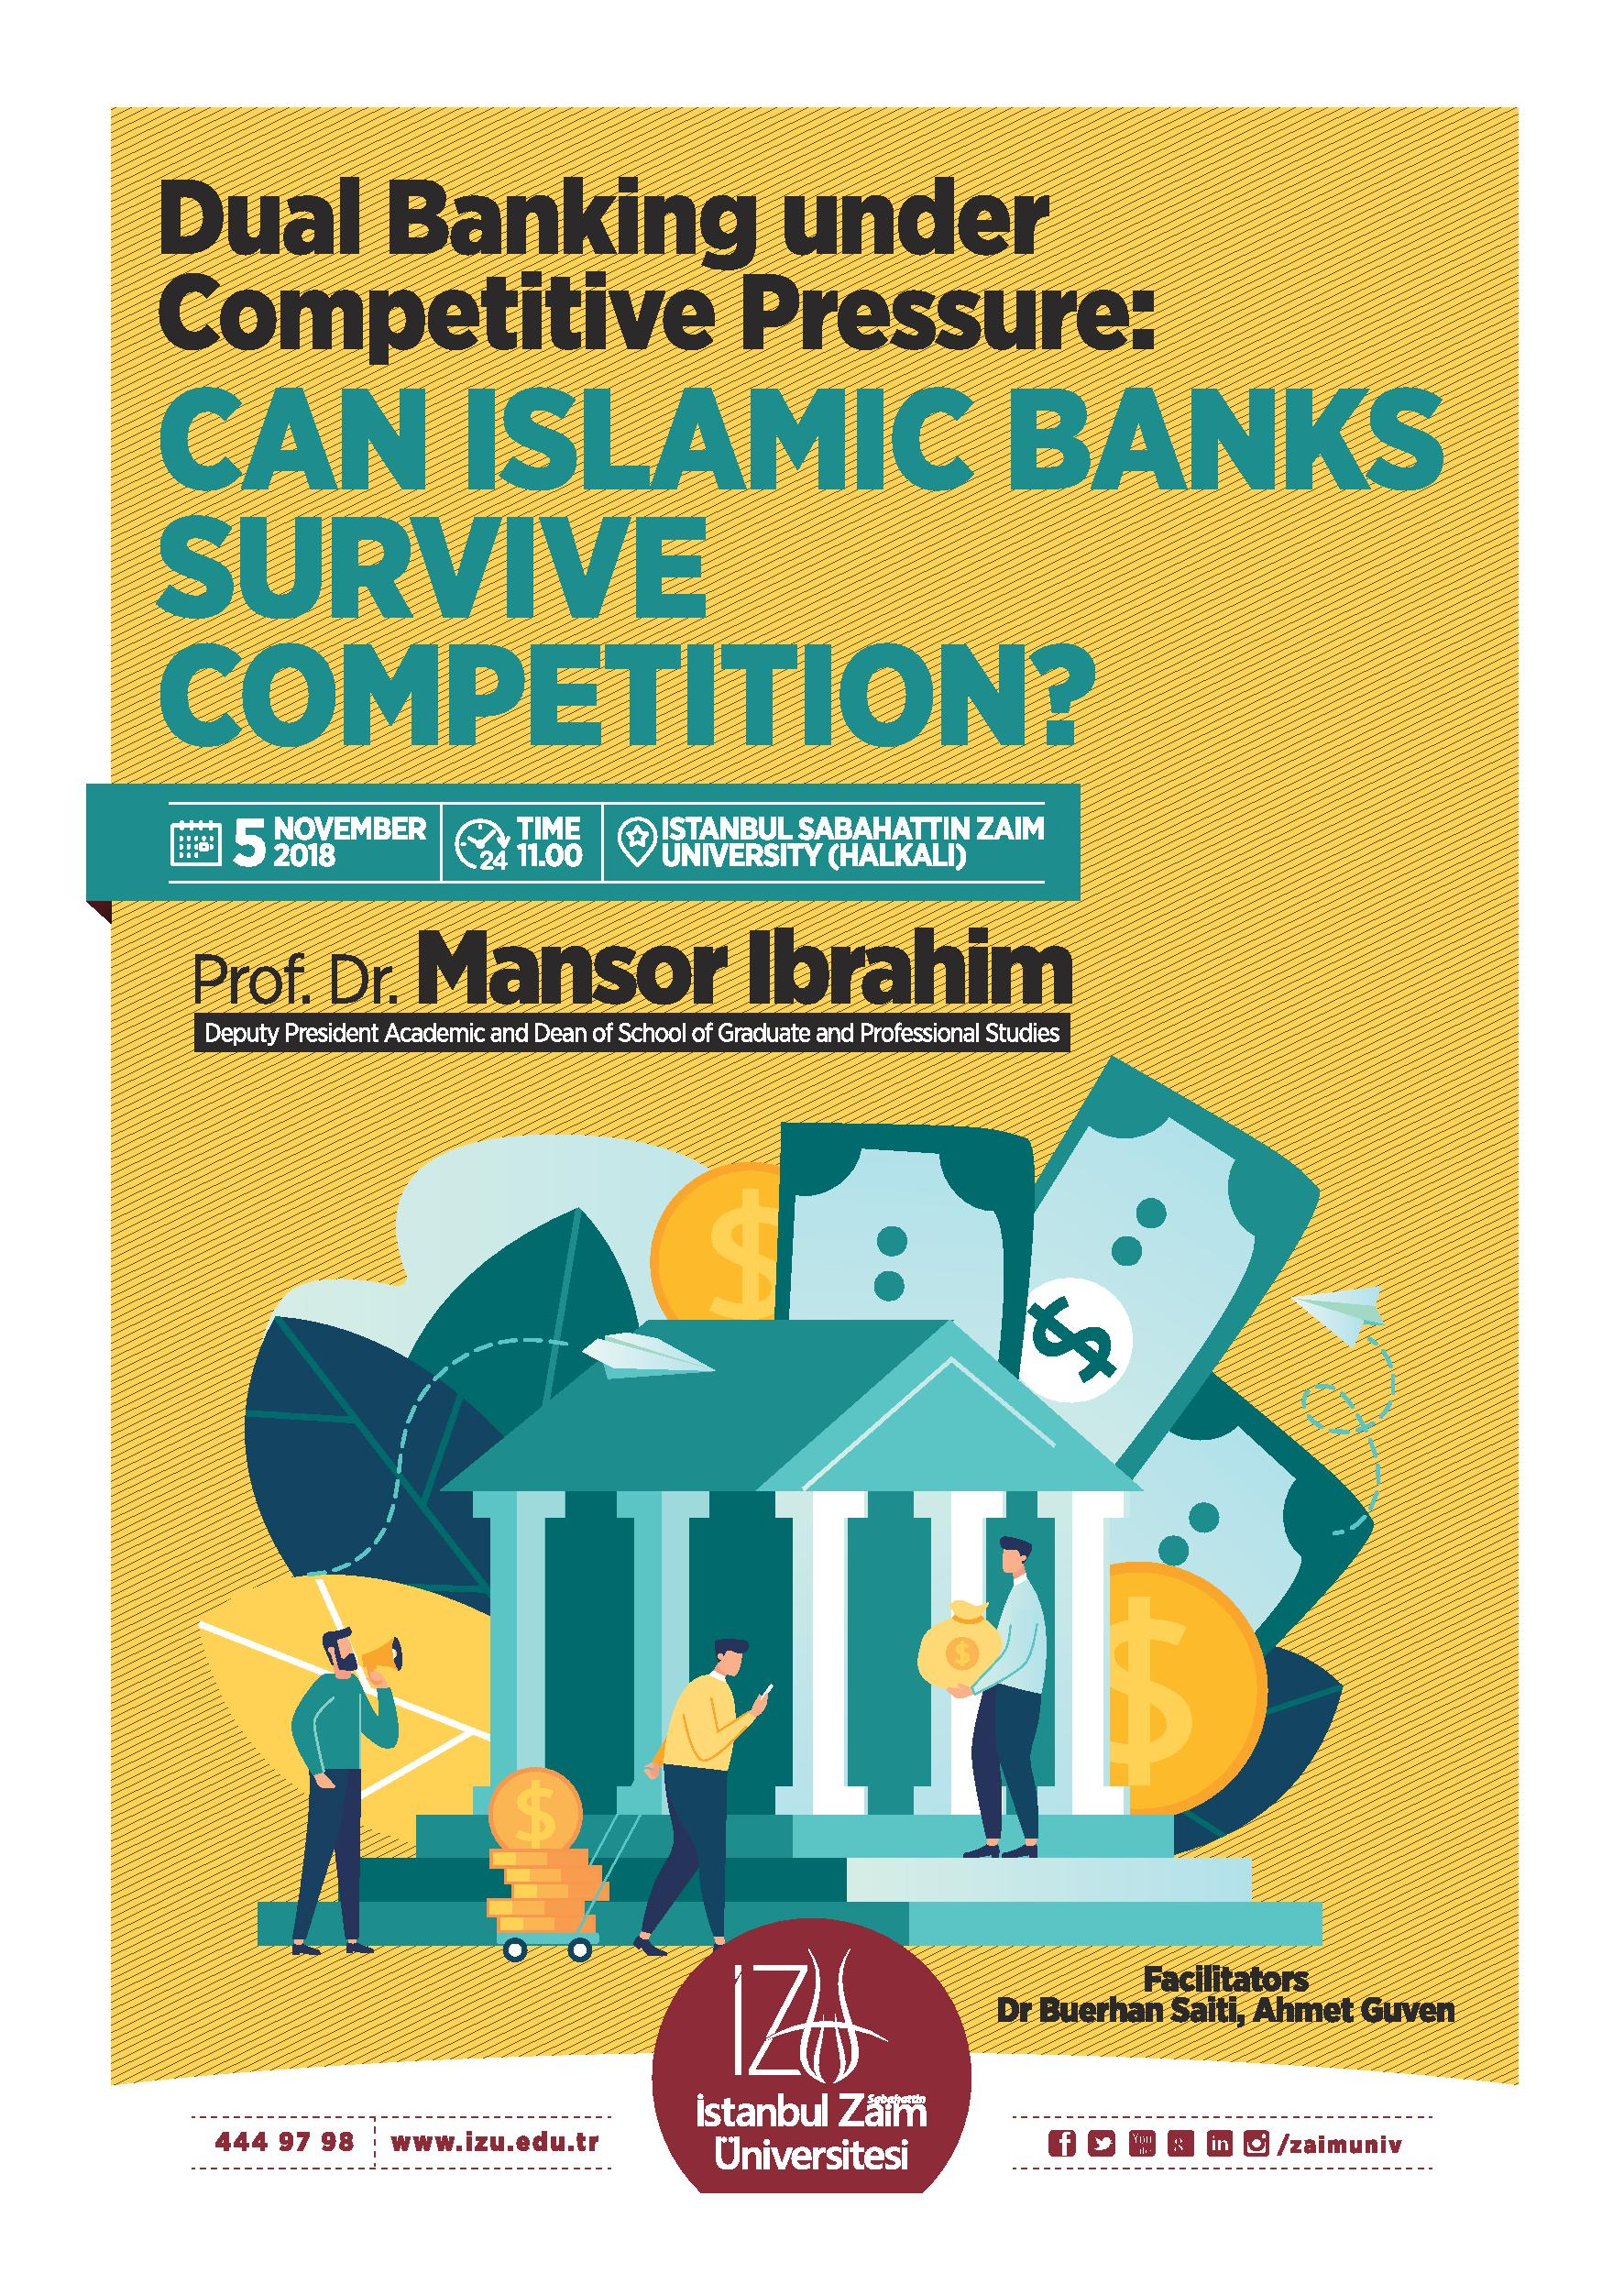 Dual Banking under Competitive Pressure: CAN ISLAMIC BANKS SURVIVE COMPETITION?